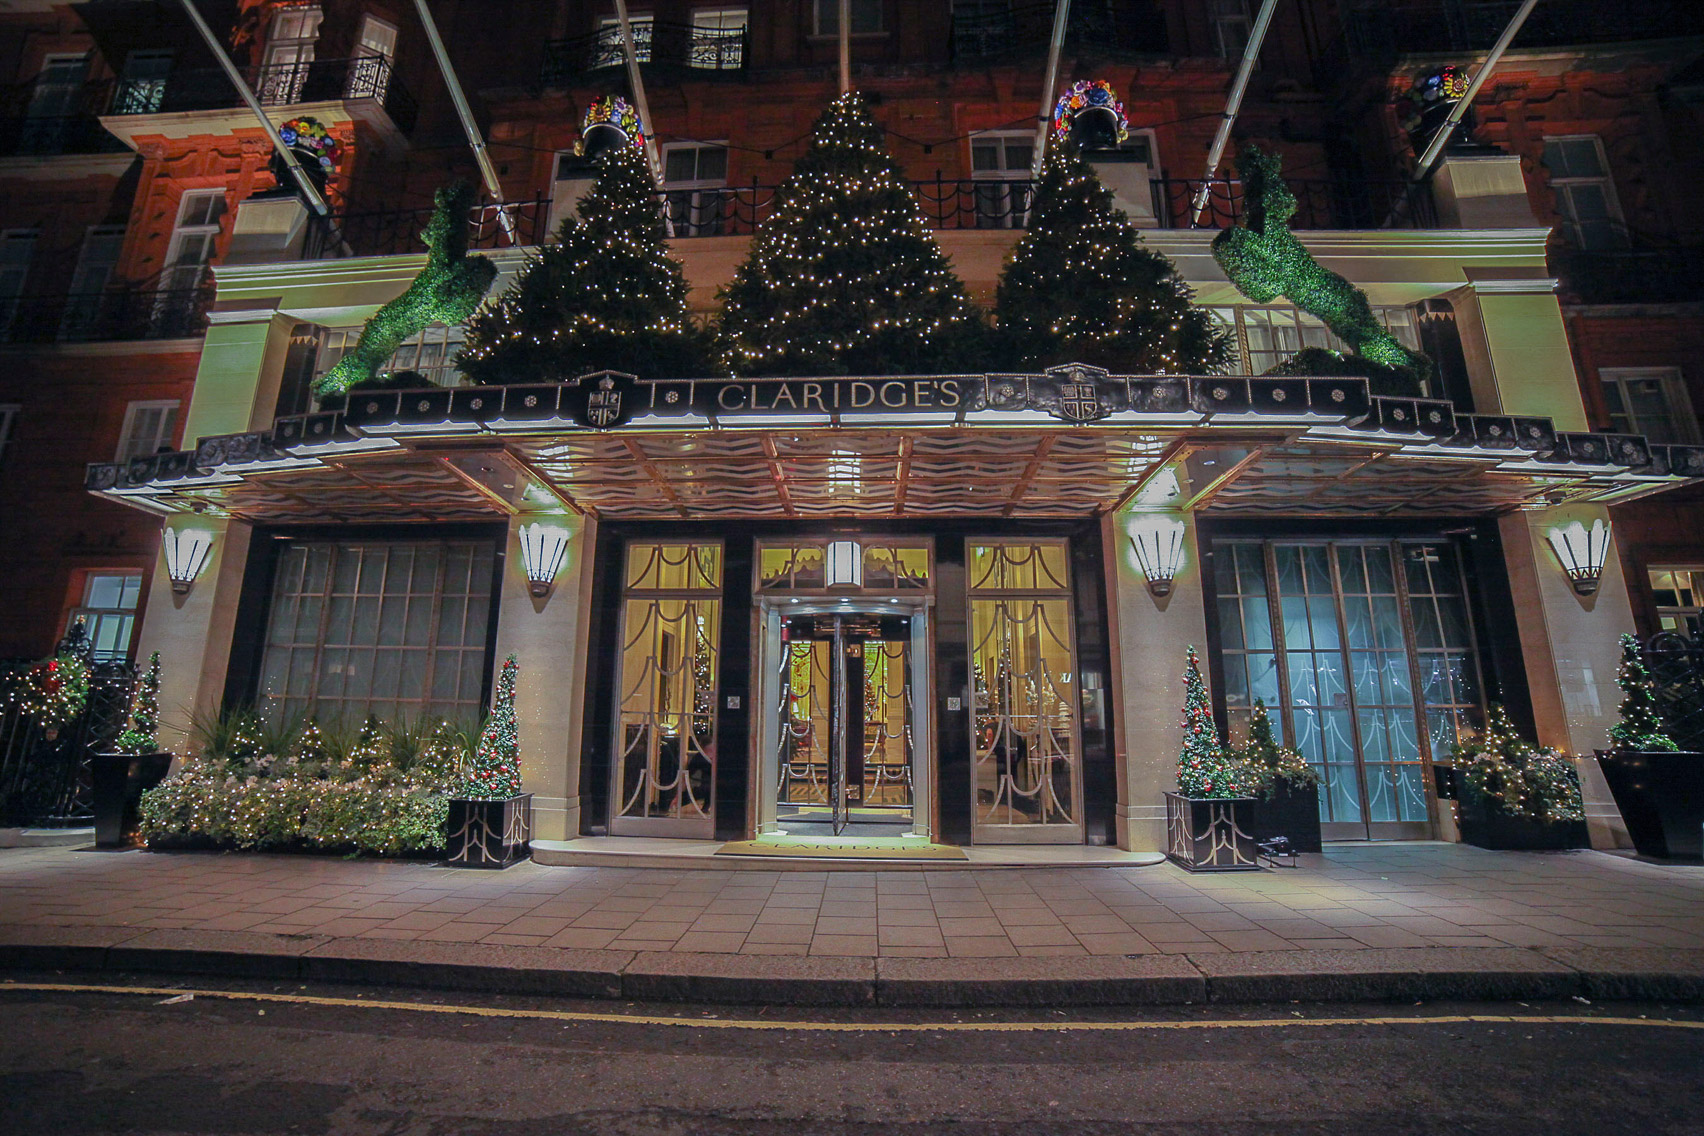 jony-ive-marc-newson-design-christmas-tree-claridges-hotel-london-uk-news_dezeen_1704_col_11